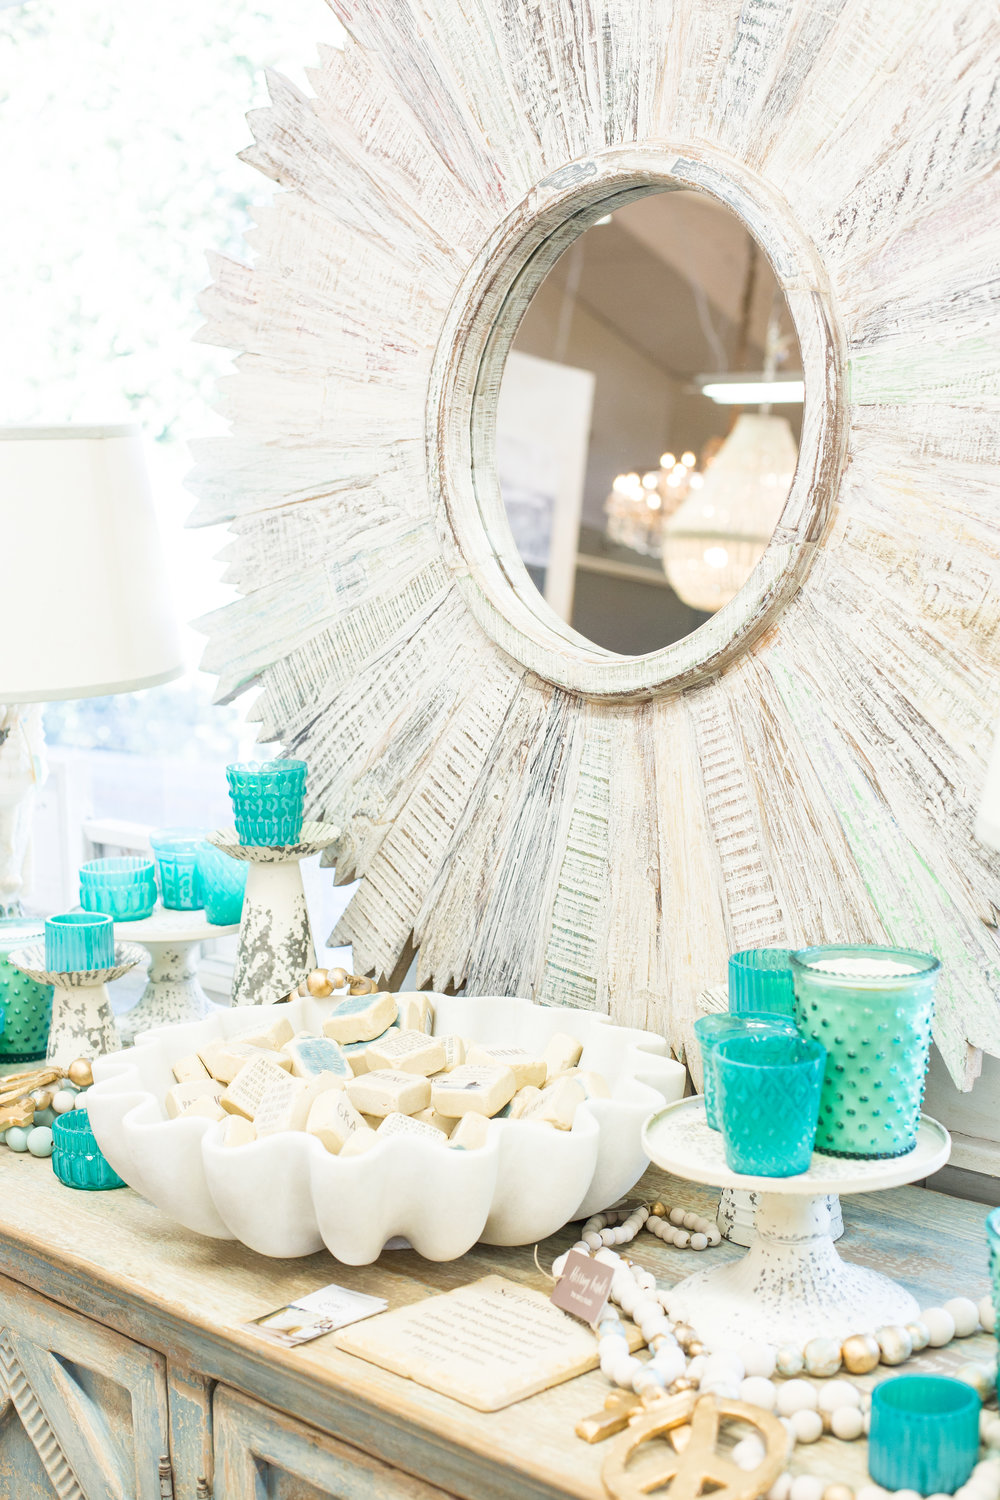 White sunburst mirror, candles, decor